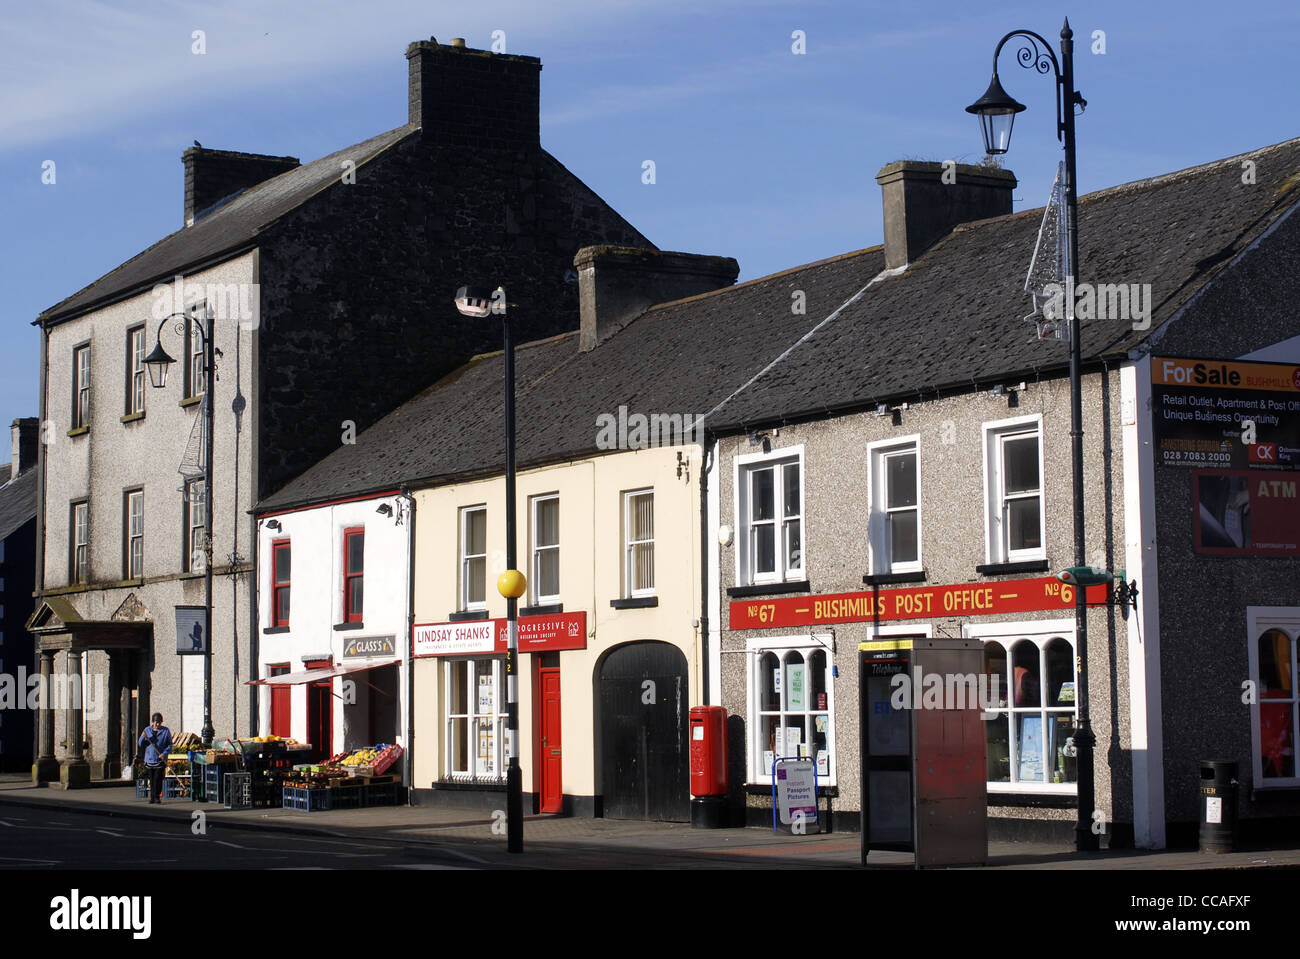 The main street of Bushmills, Coastal Road, County Antrim, Ulster, North Ireland, UK, Europe. - Stock Image